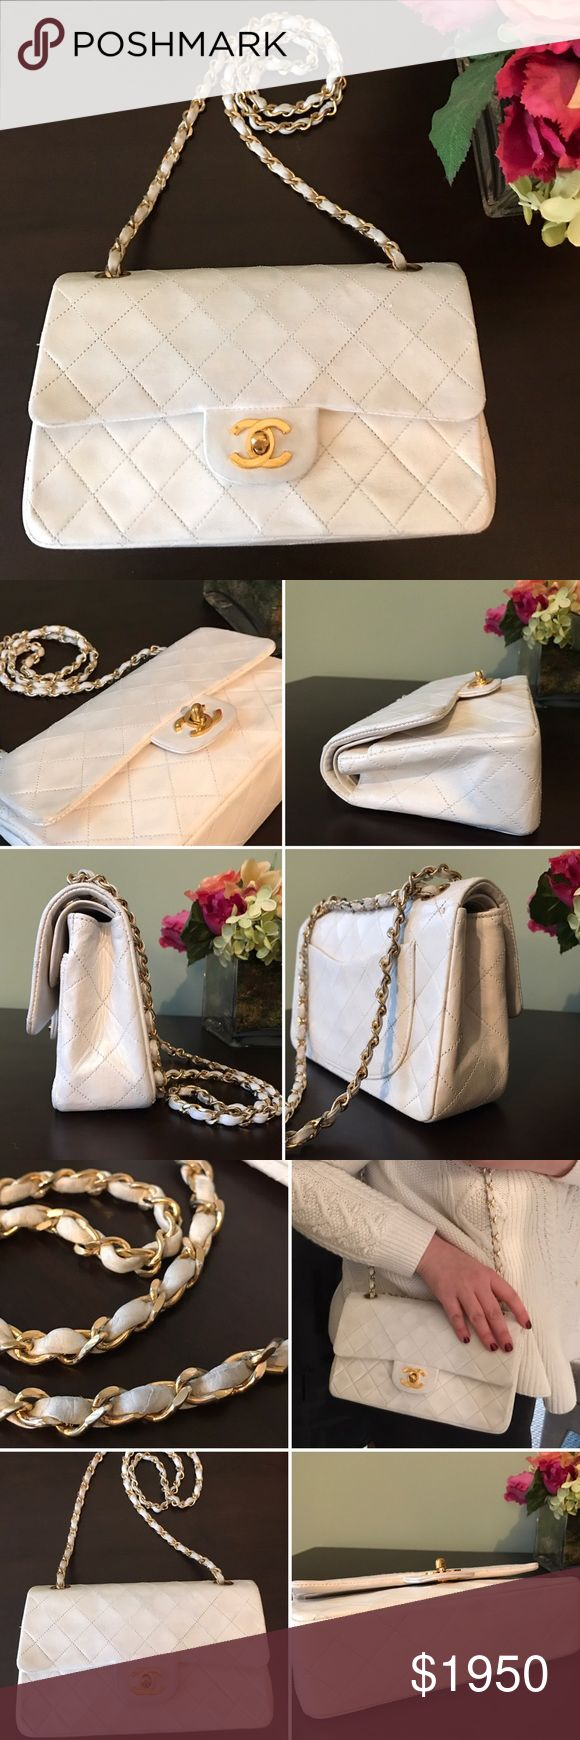 Chanel double flap timeless classic bag purse Gorgeous. Some marks on leather and chain. Very clean. Vintage beauty. Be bold in winter white (I.e. Cream) with stunning gold hardware. Chain can be double up or worn long. Corners in tact. Some rubbing as shown in pics. See other listing for more photos! Thanks for looking!! 100% authentic. CHANEL Bags Shoulder Bags